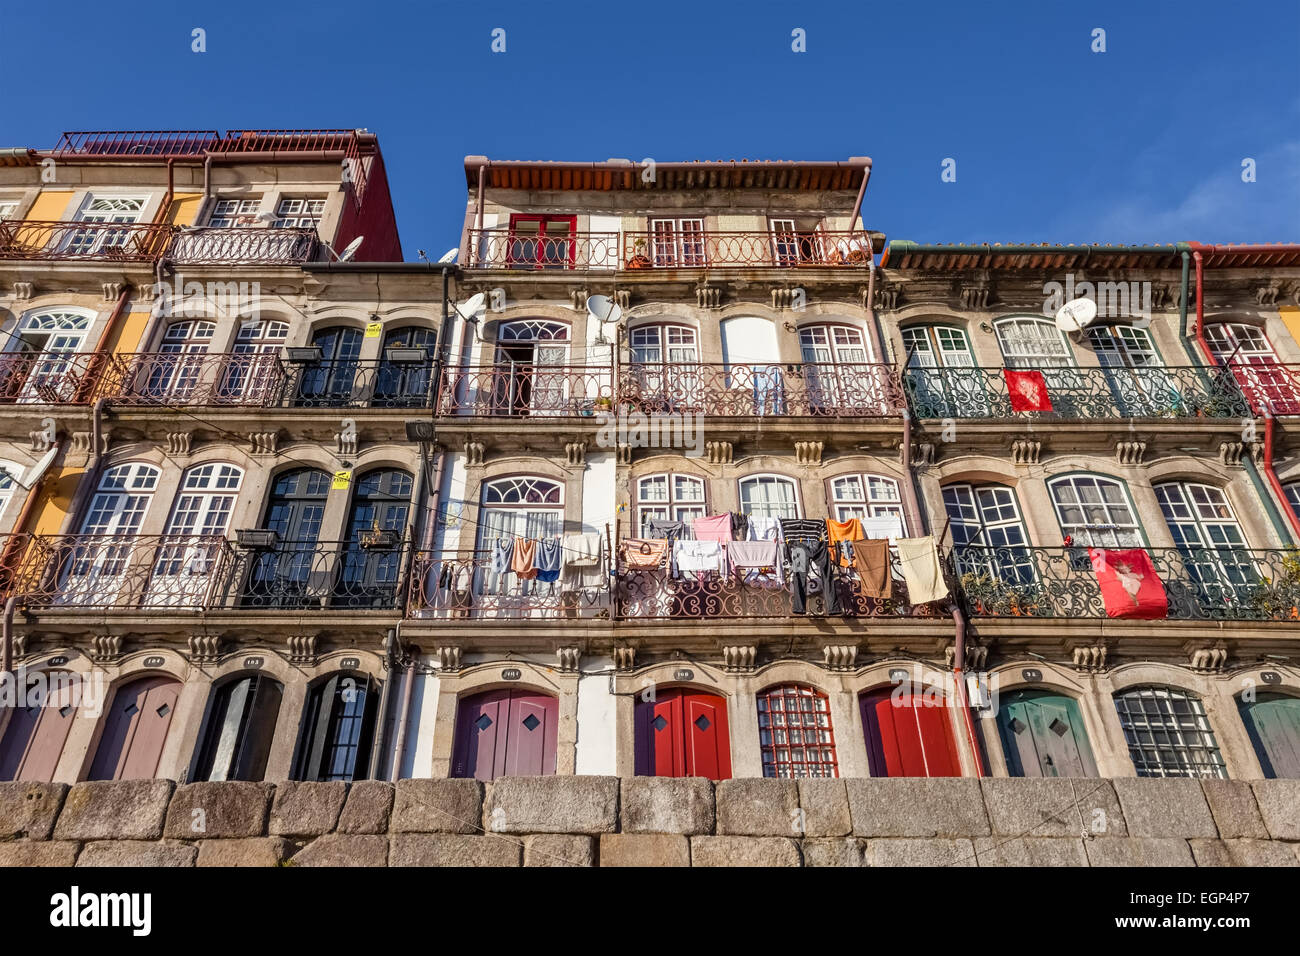 Porto, Portugal. The typical colorful buildings of the Ribeira District in Porto, Portugal. Unesco World Heritage - Stock Image